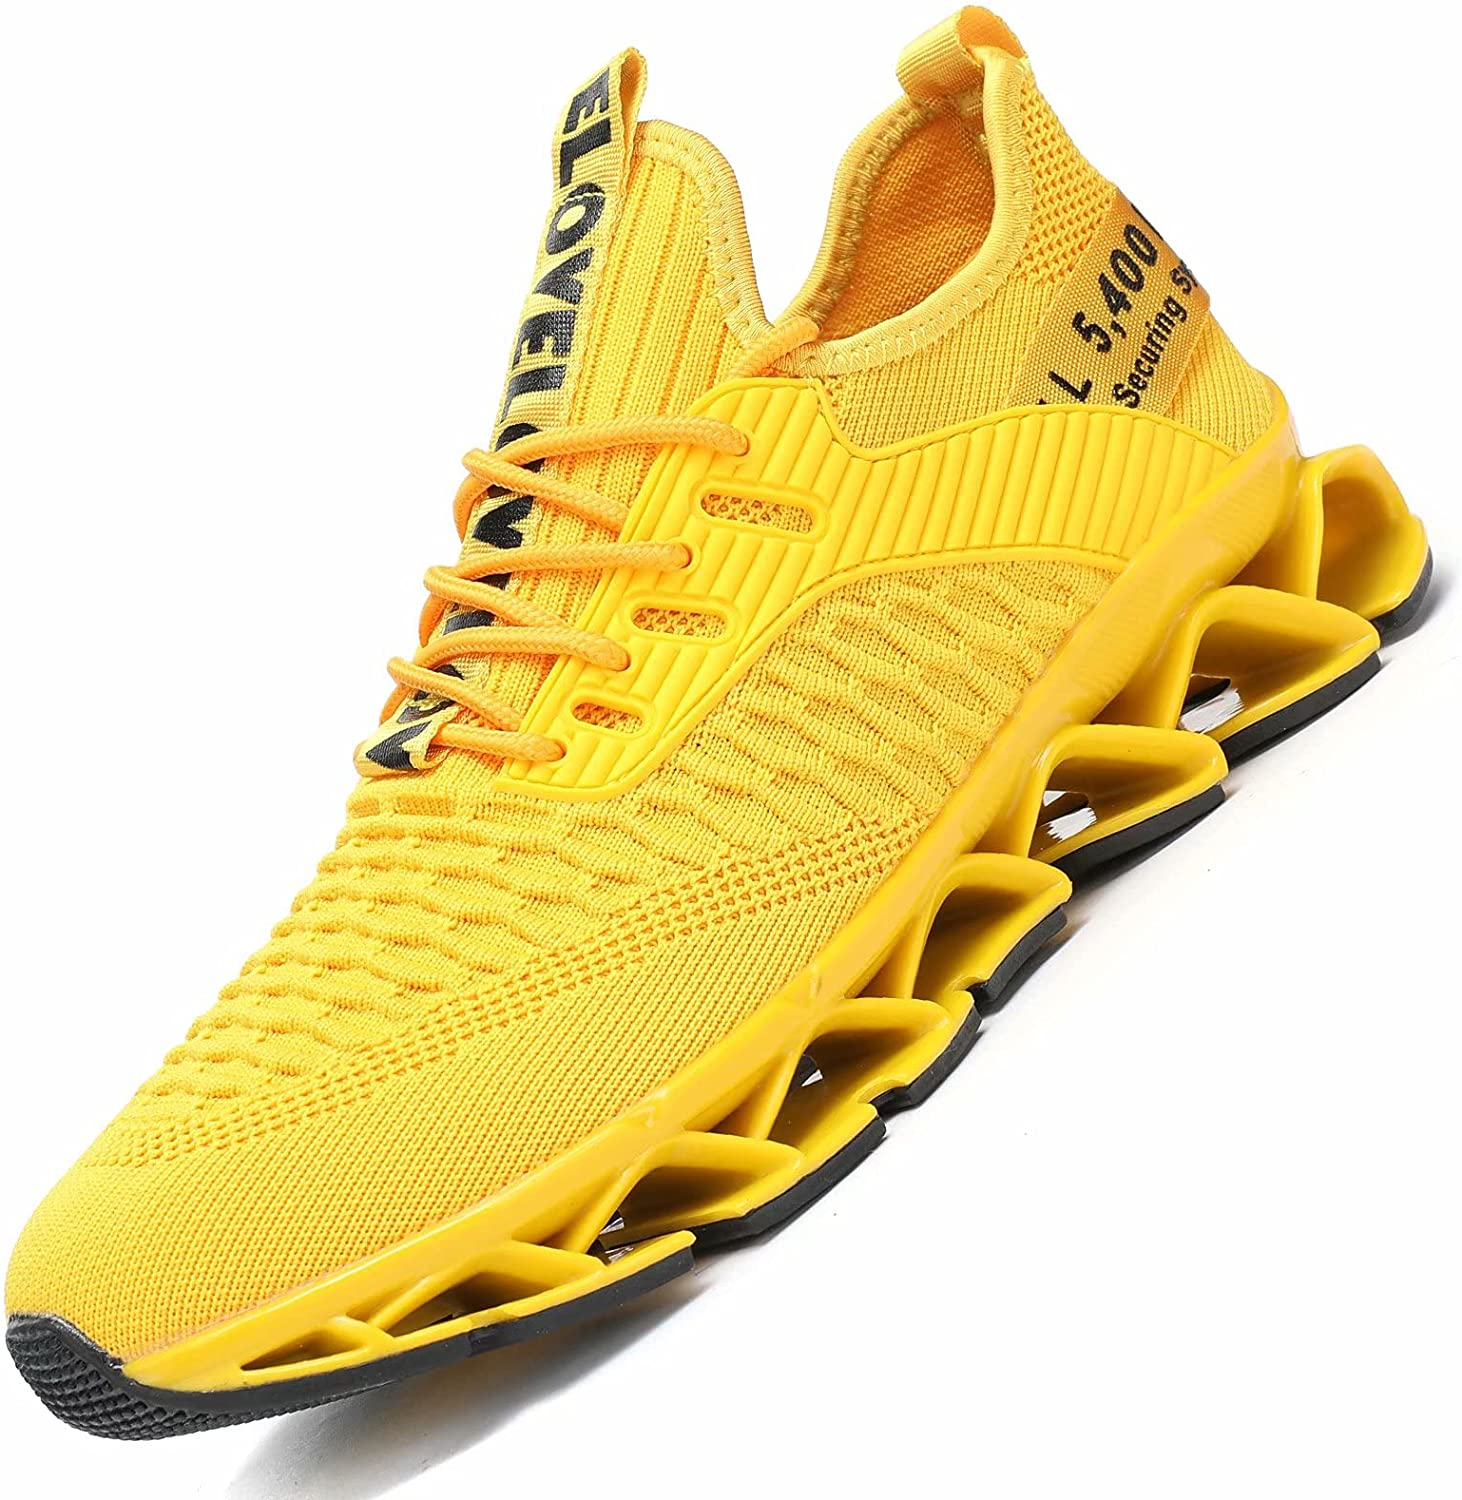 Chopben Men's Max 87% OFF Running Shoes Now on sale Blade Sneakers Fashion Brea Non Slip